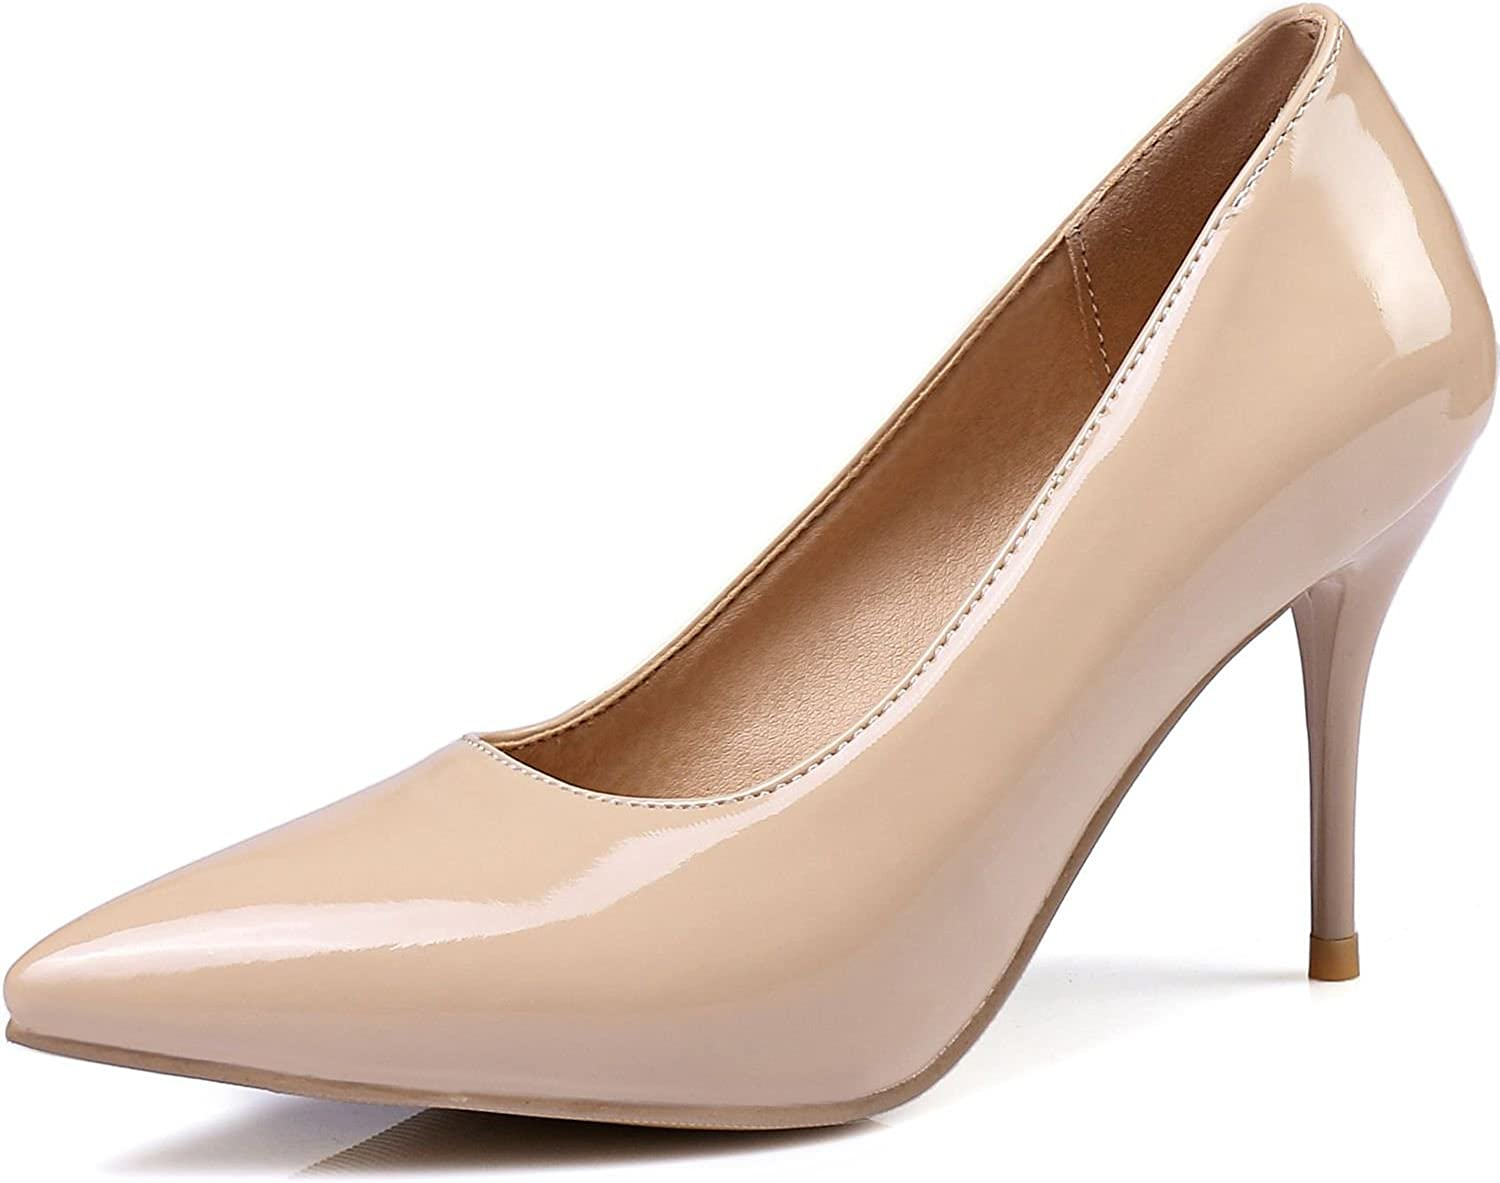 KingRover Women's Classic Fashion Pointed Closed Toe Stiletto Work Office Dress Pumps,5 B(M) US,Beige